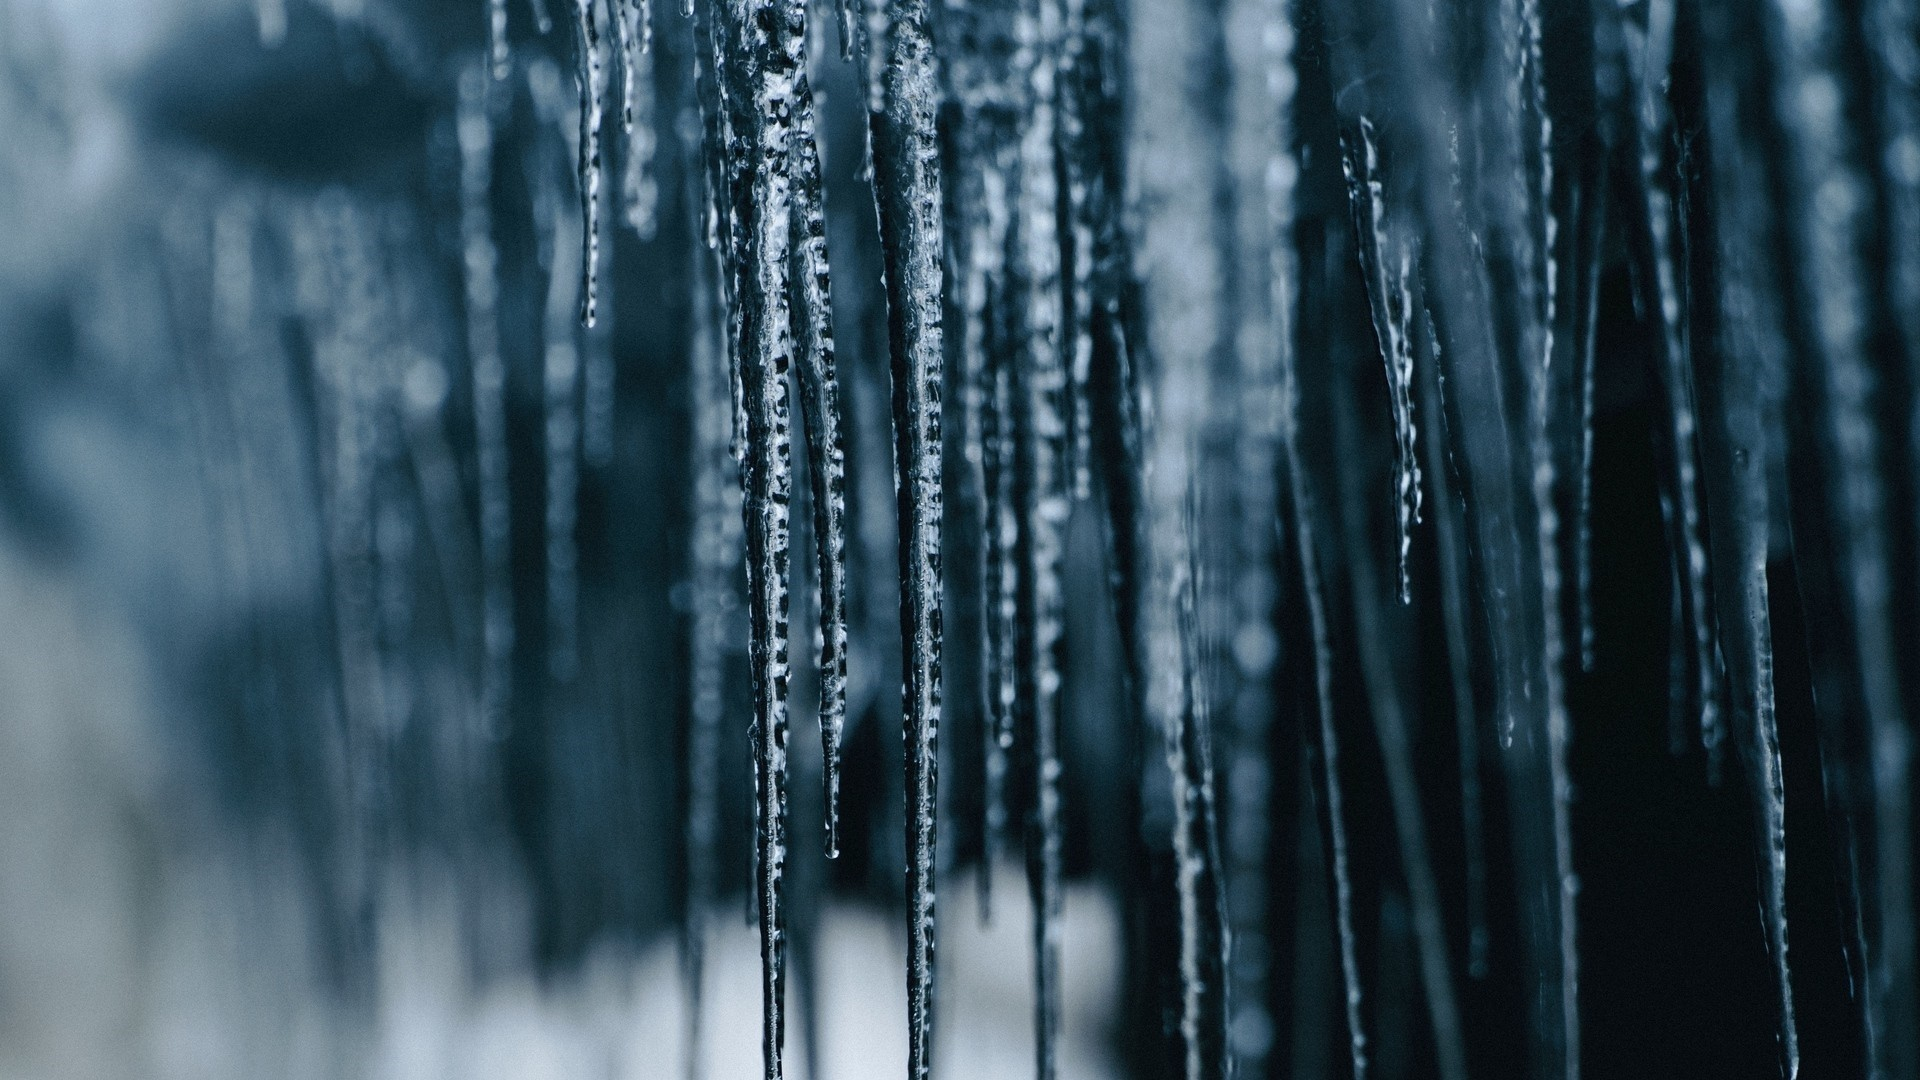 Icicles Wallpaper image hd